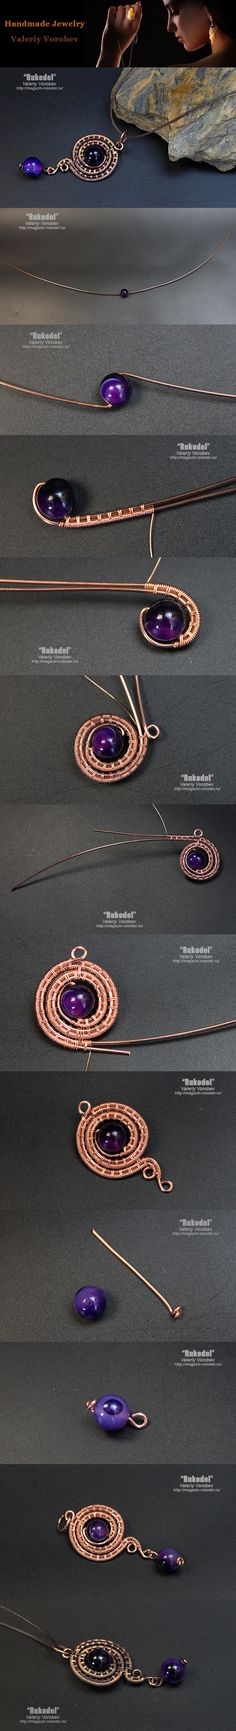 Pendant made of copper wire. Wire Wrap tutorial.